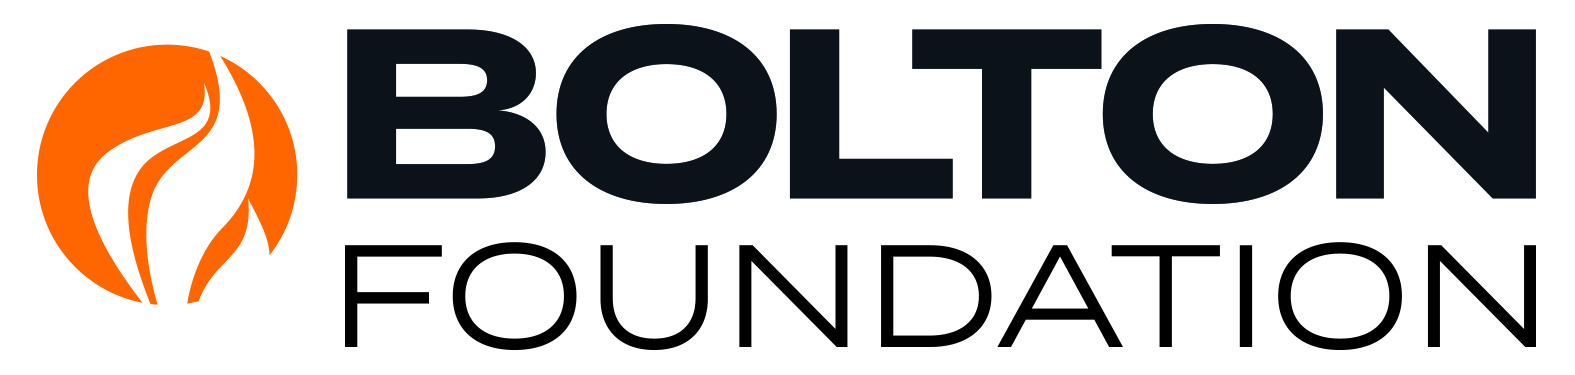 Apply For A Grant From The Bolton Foundation | Empower A Nonprofit